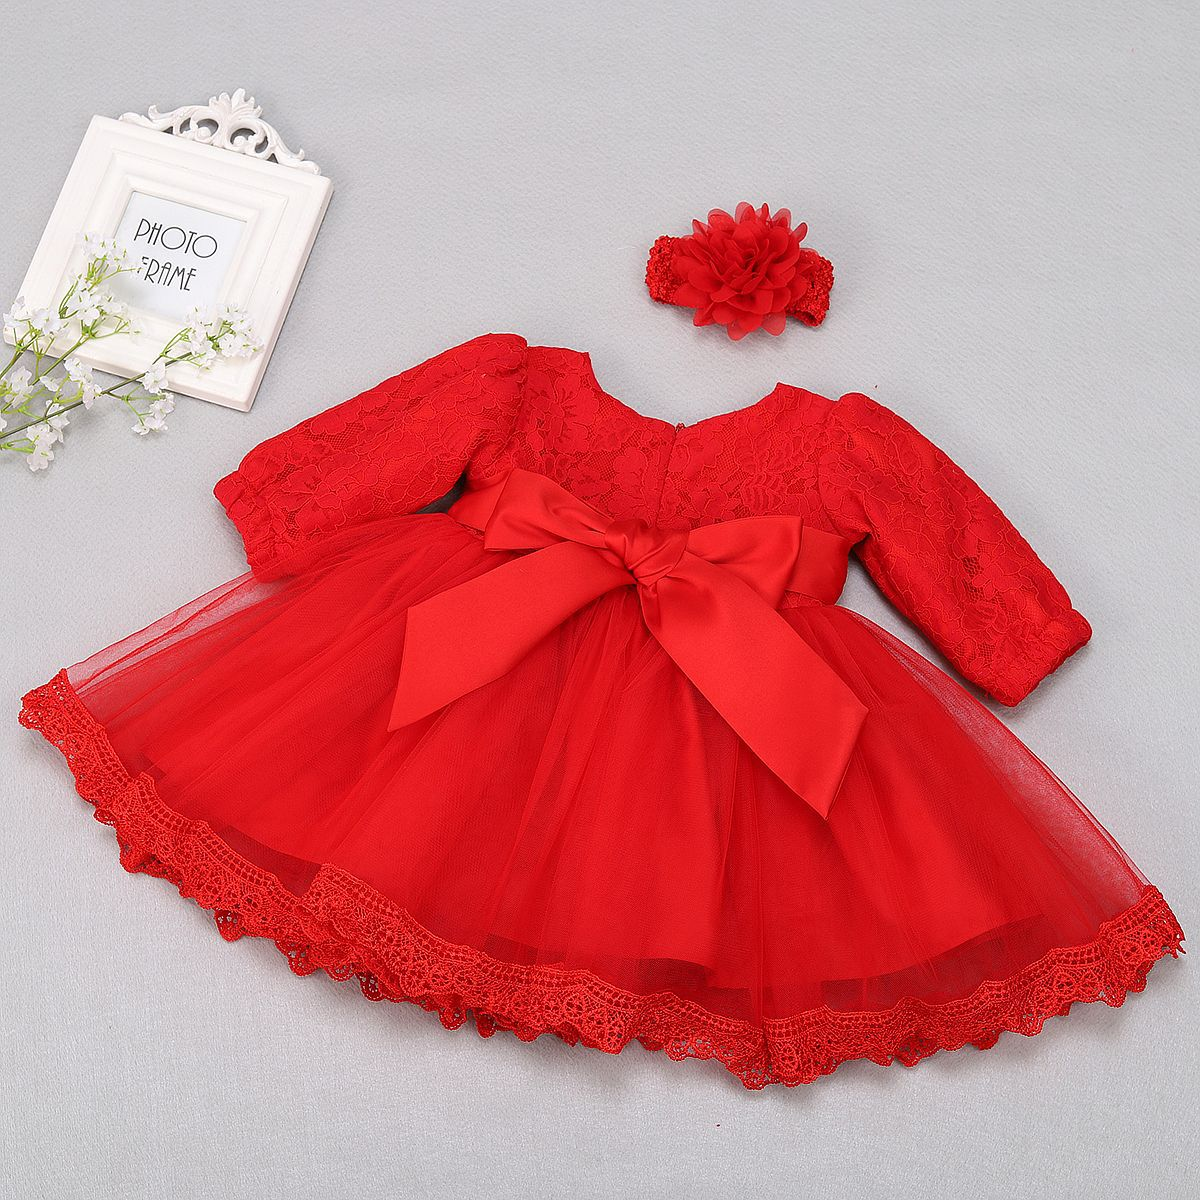 Baby Girl Dresses For Wedding In Winter Dacc